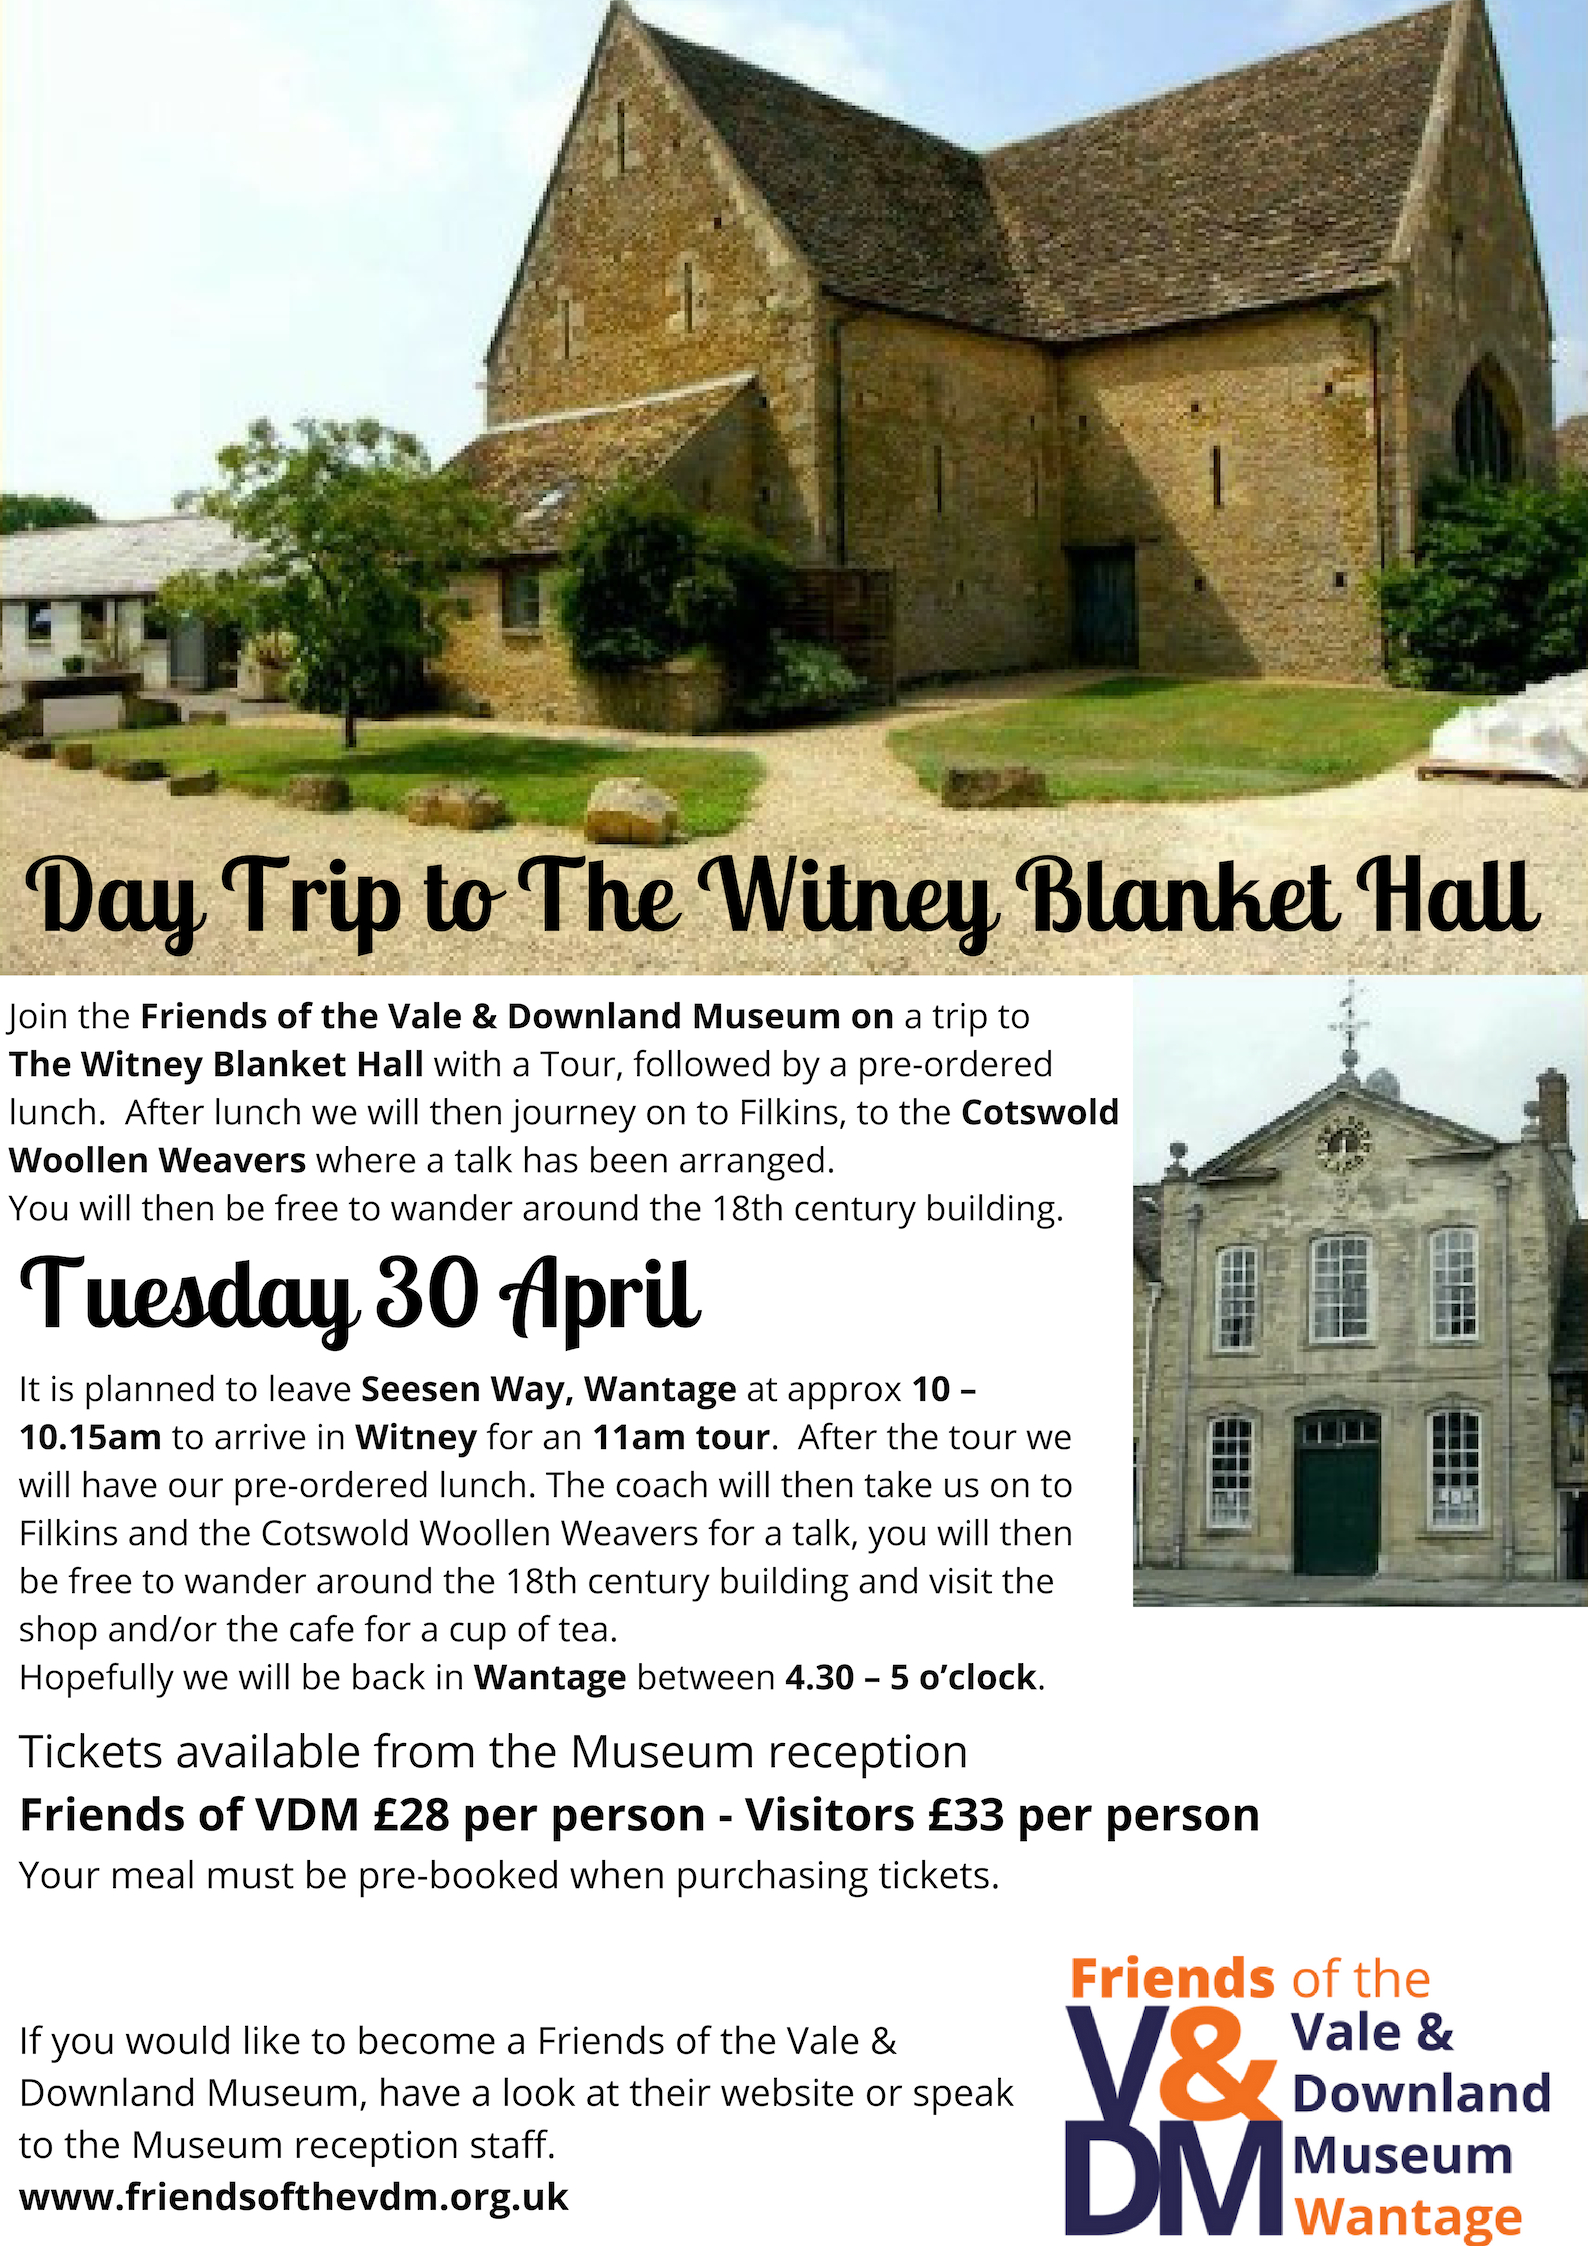 Day Trip to The Witney Blanket Hall & Cotswold Woollen Weavers